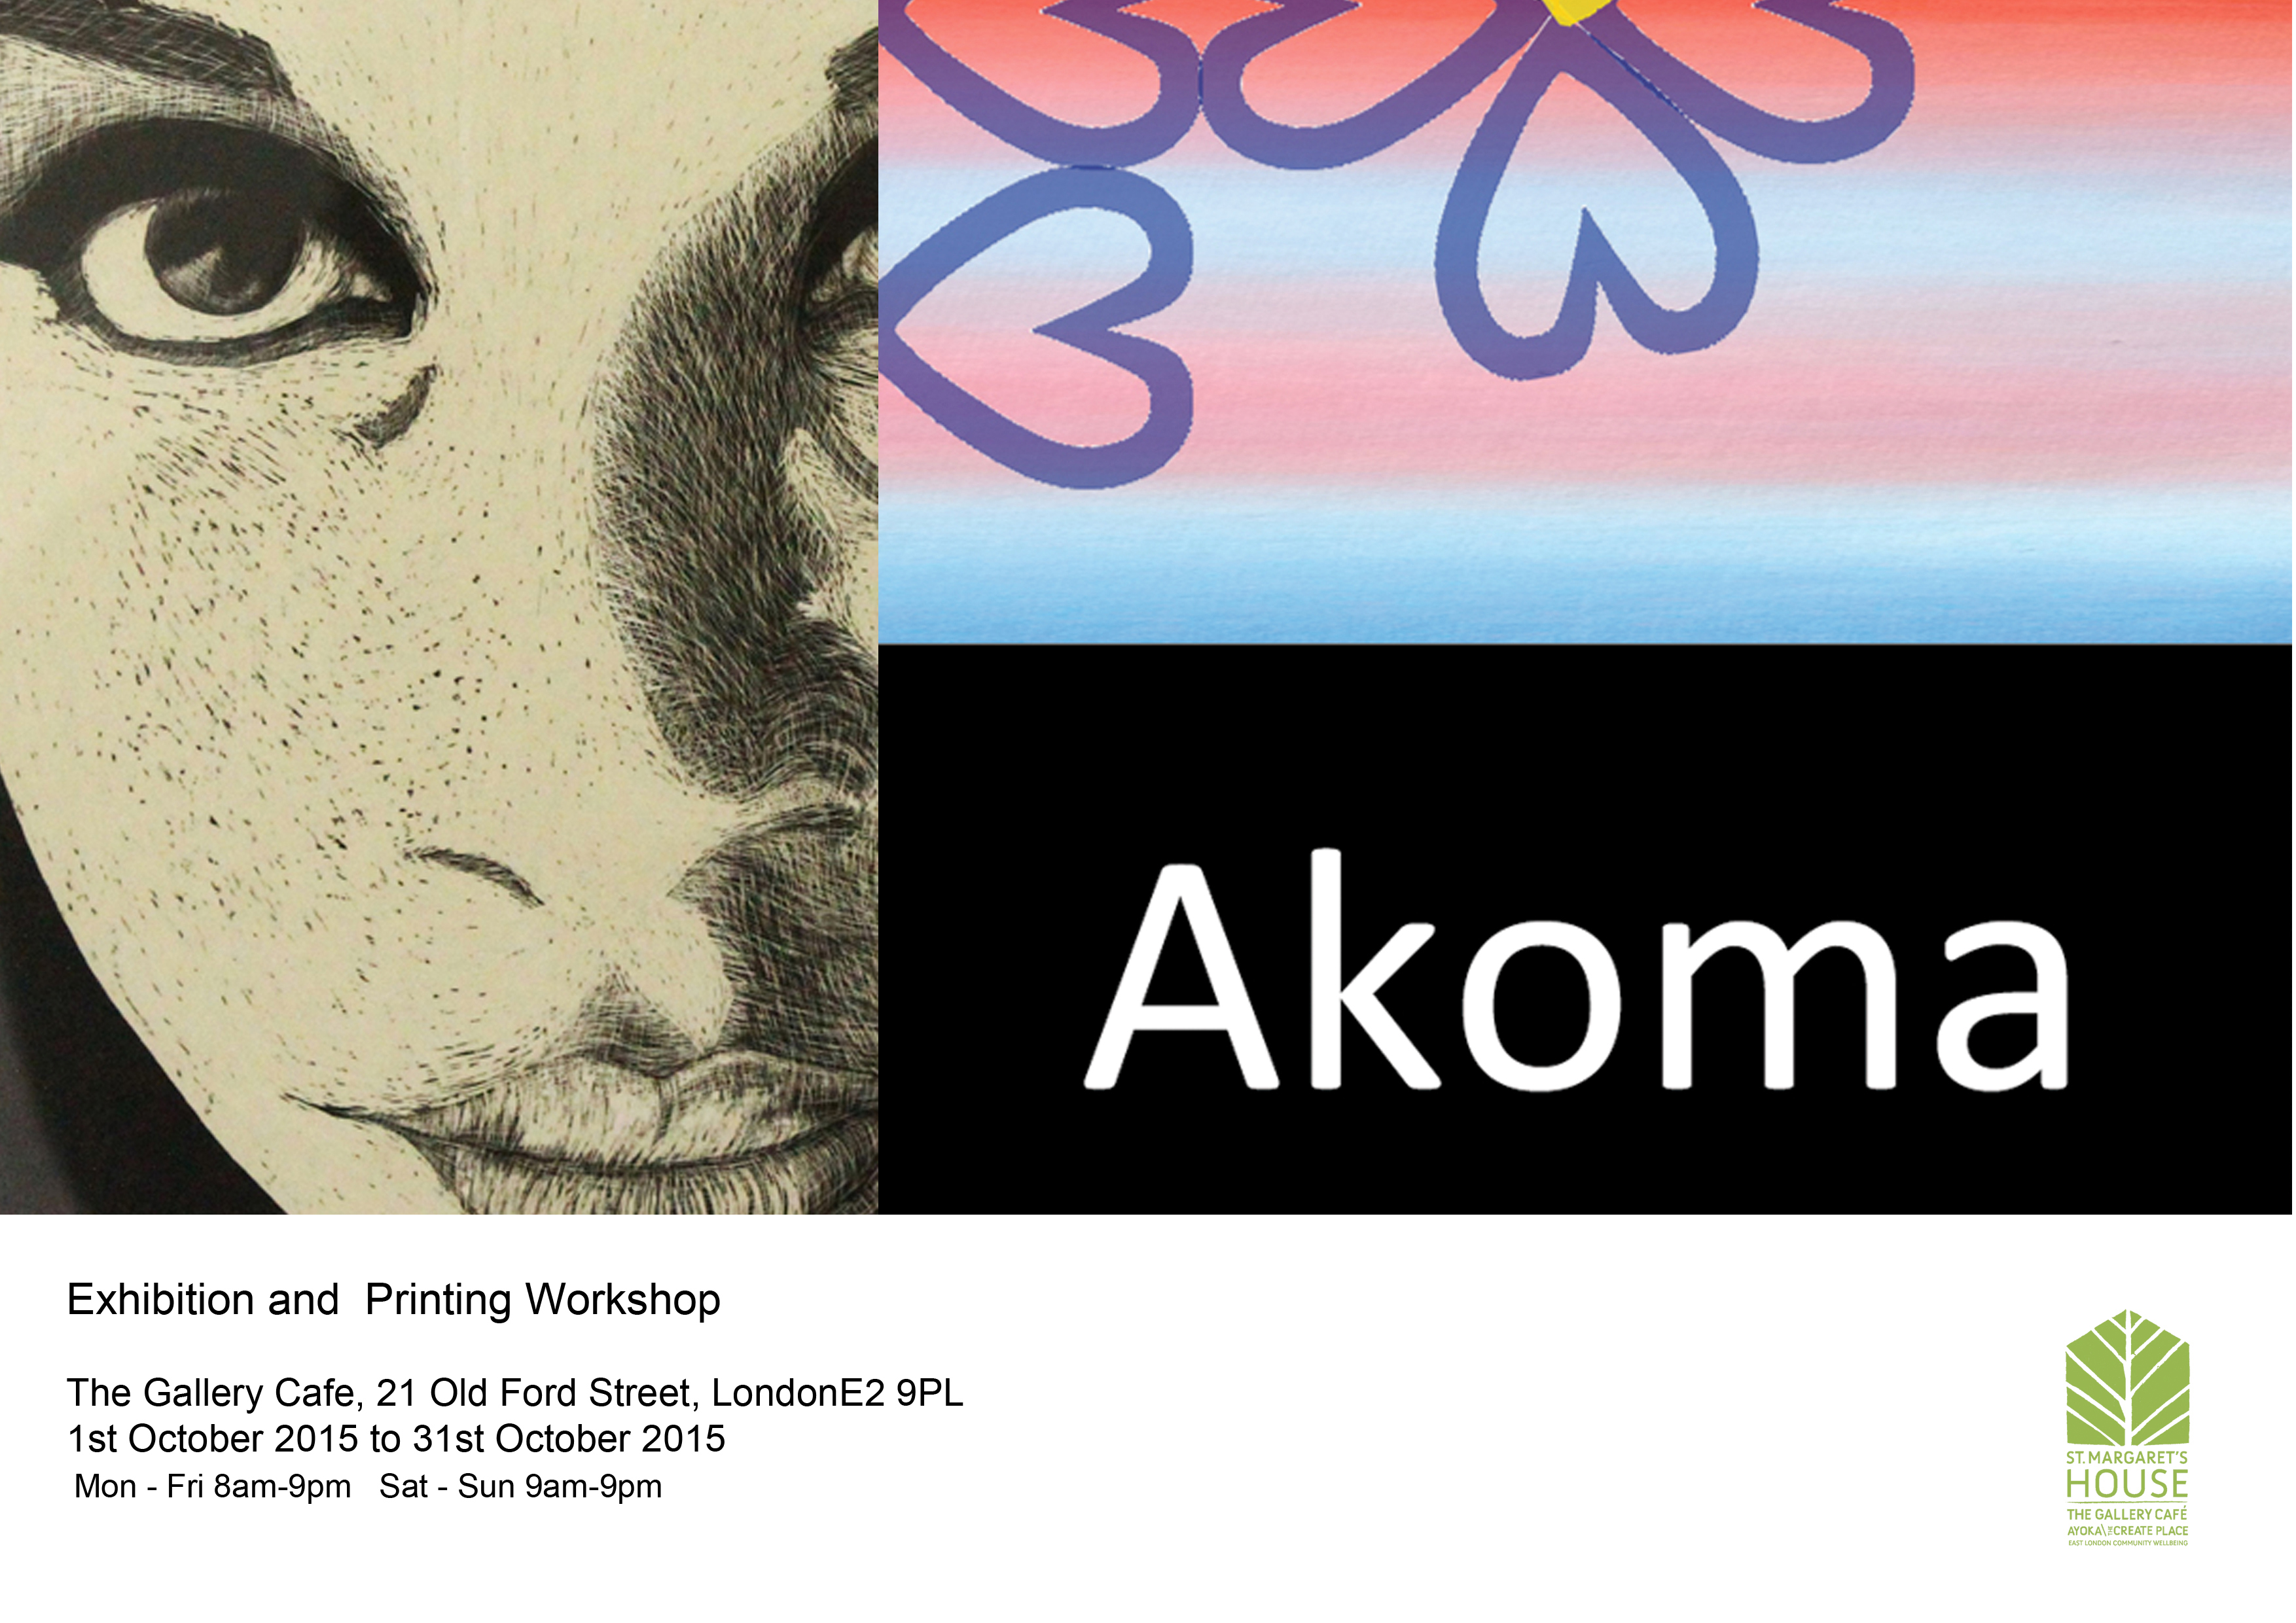 Akoma Exhibition